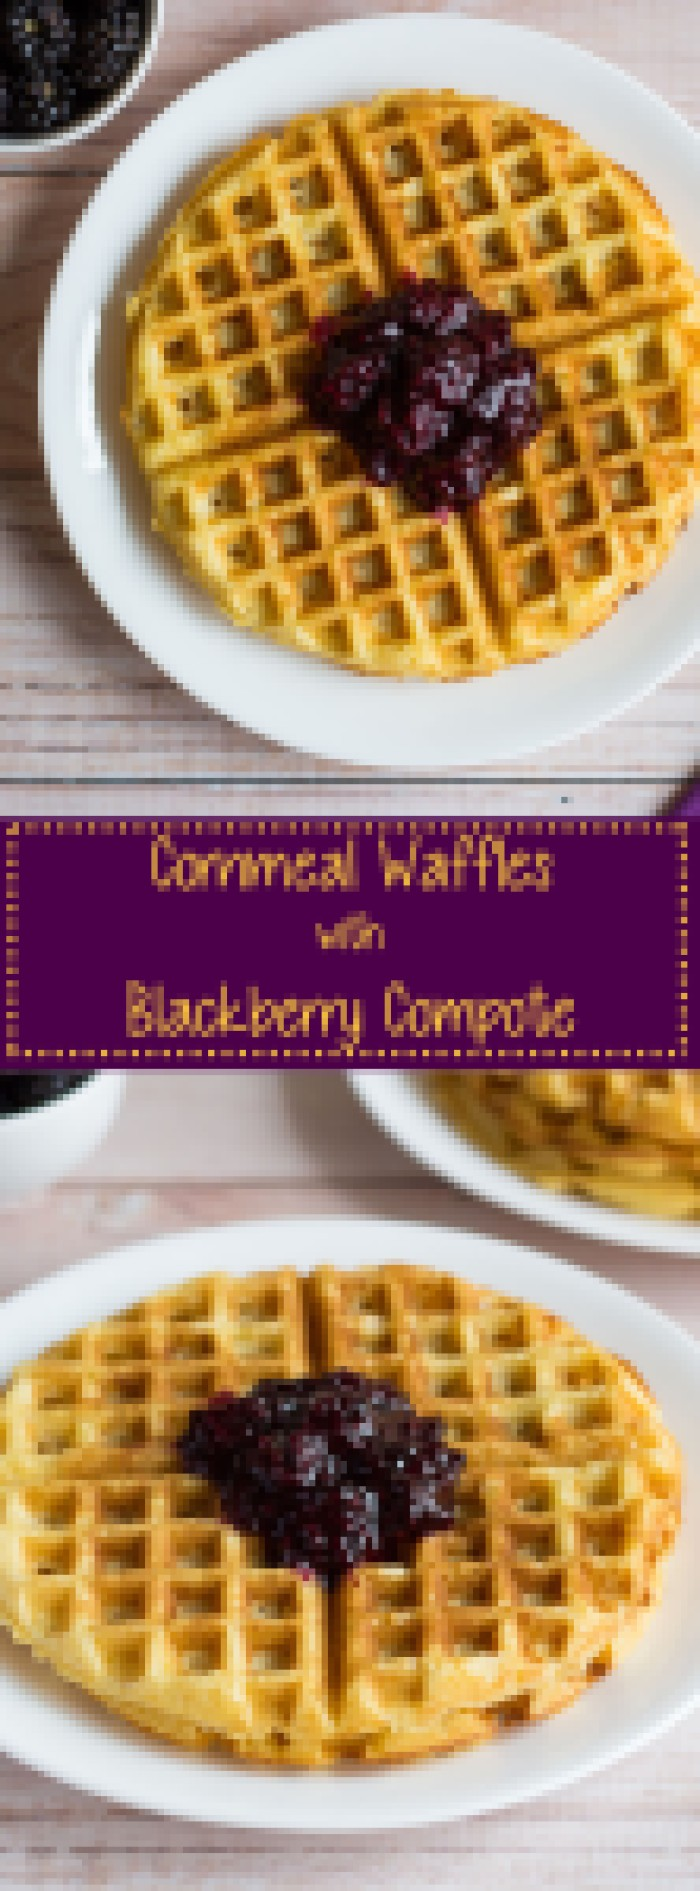 Cornmeal Waffles with Blackberry Compote